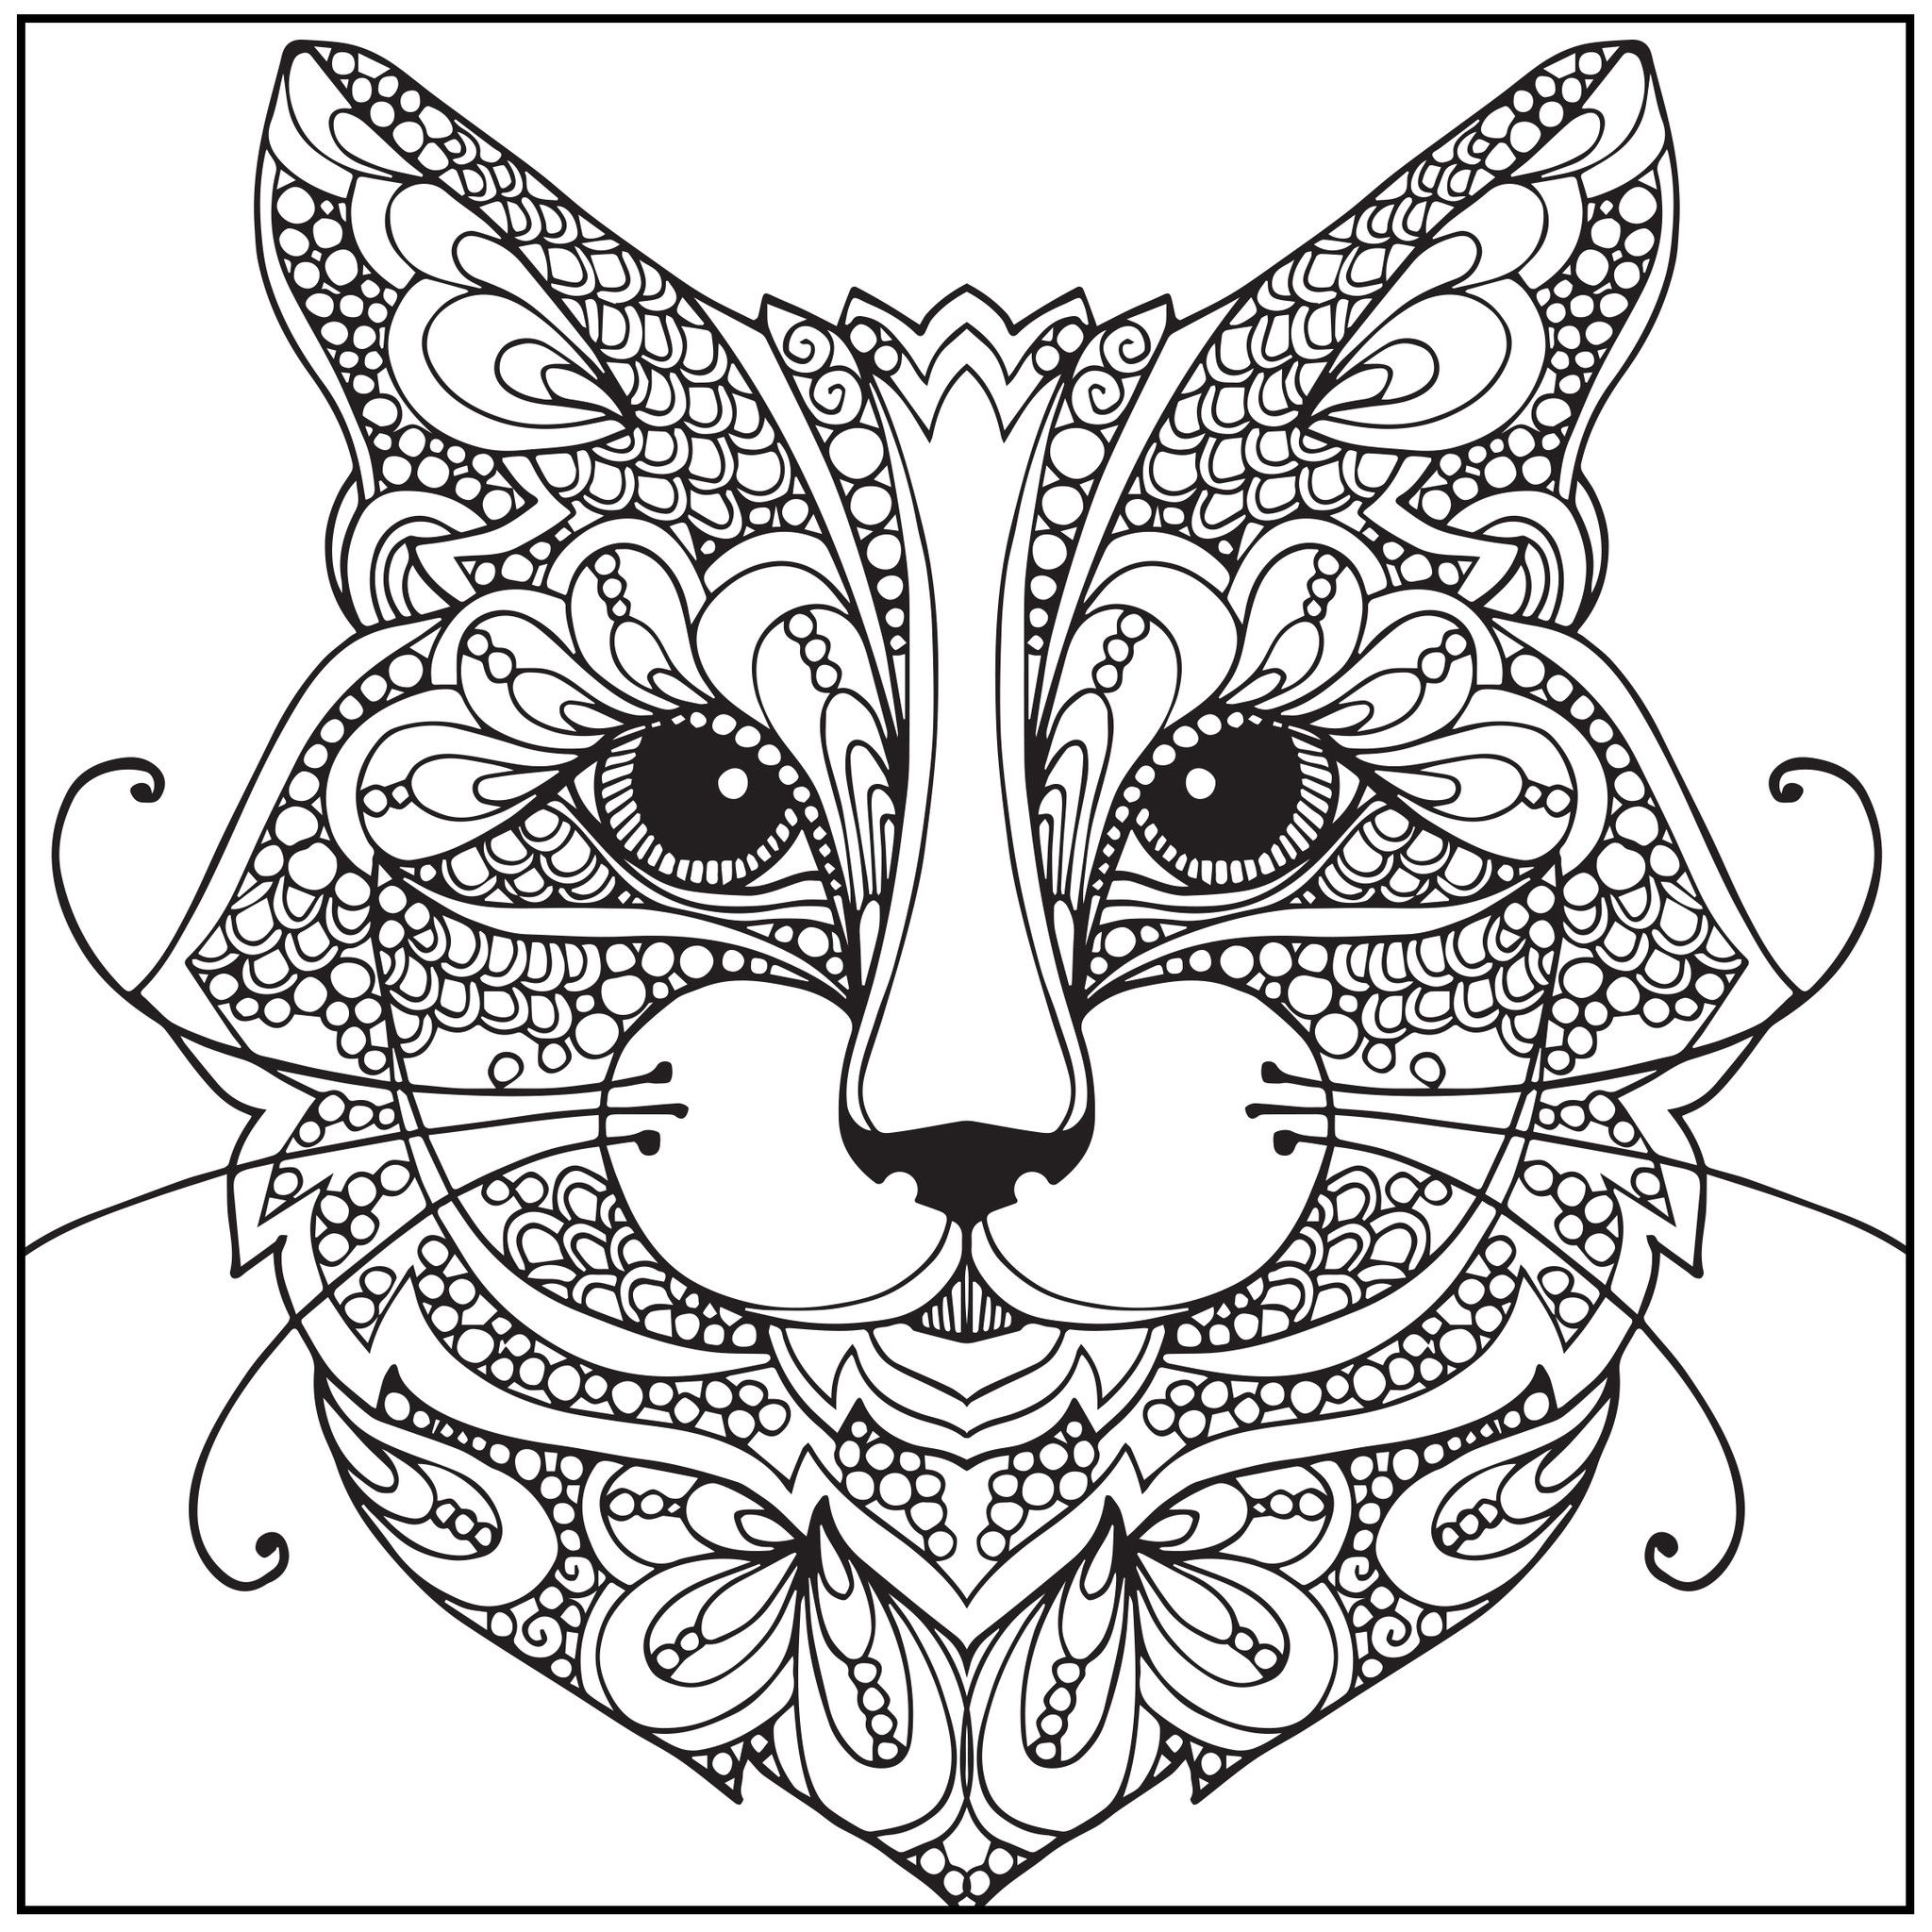 Stress Coloring Pages Animals : Majestic animals coloring collection google search